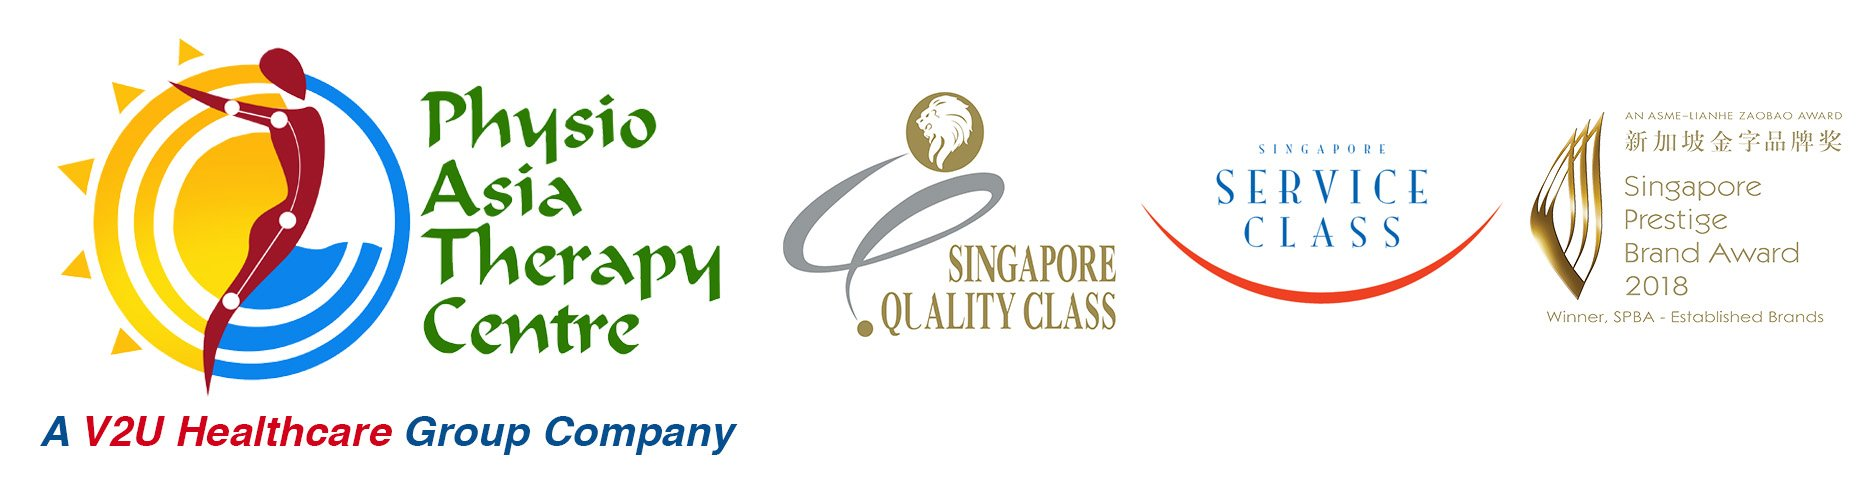 What Makes Physioasia.sg Singapore's Most Award-Winning Physiotherapy Clinic?